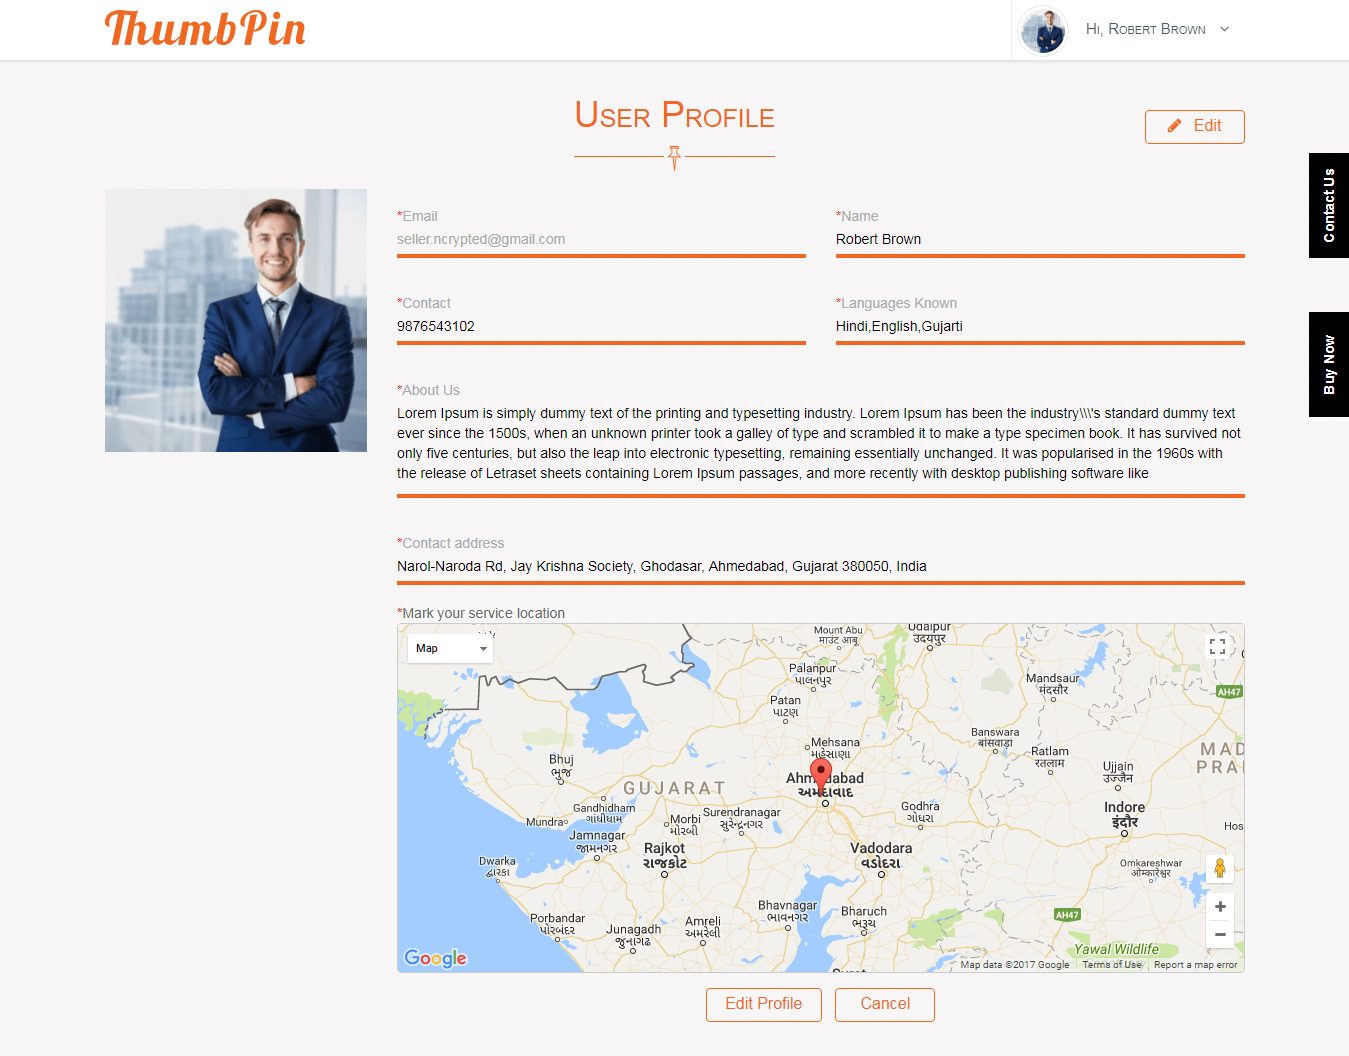 Pin-point Service Location on Google MAP